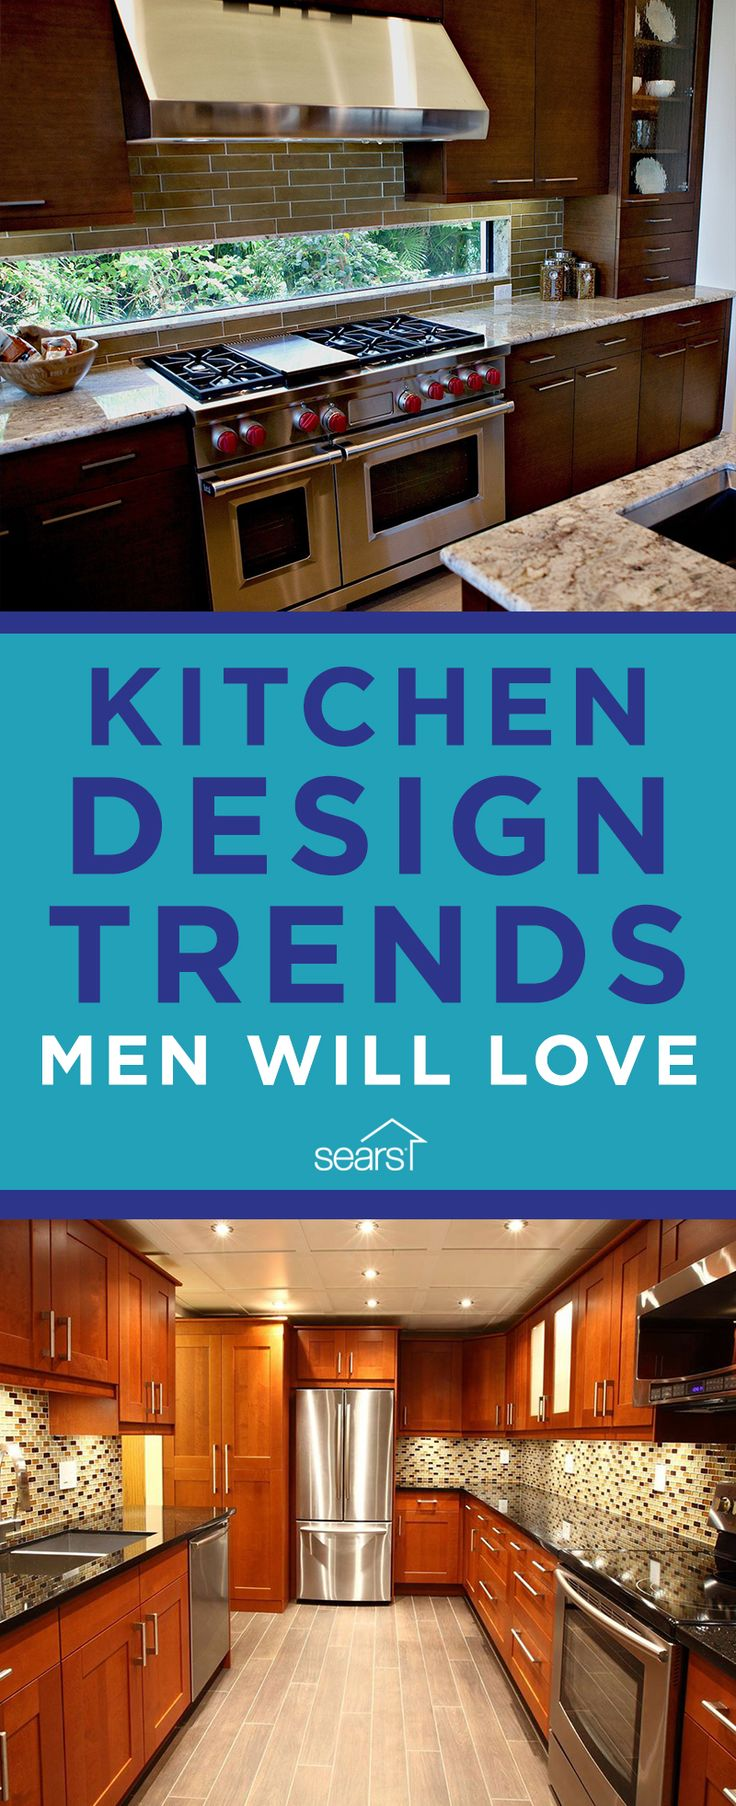 Turn your kitchen into the ultimate man cave! From beer and wine fridges to a salamander broiler and kitchen entertainment centers, here are some gadgets and appliances to help you create a tricked-out kitchen man cave that everyone will love. Visit the Sears Home Services blog for the full list of kitchen trends.